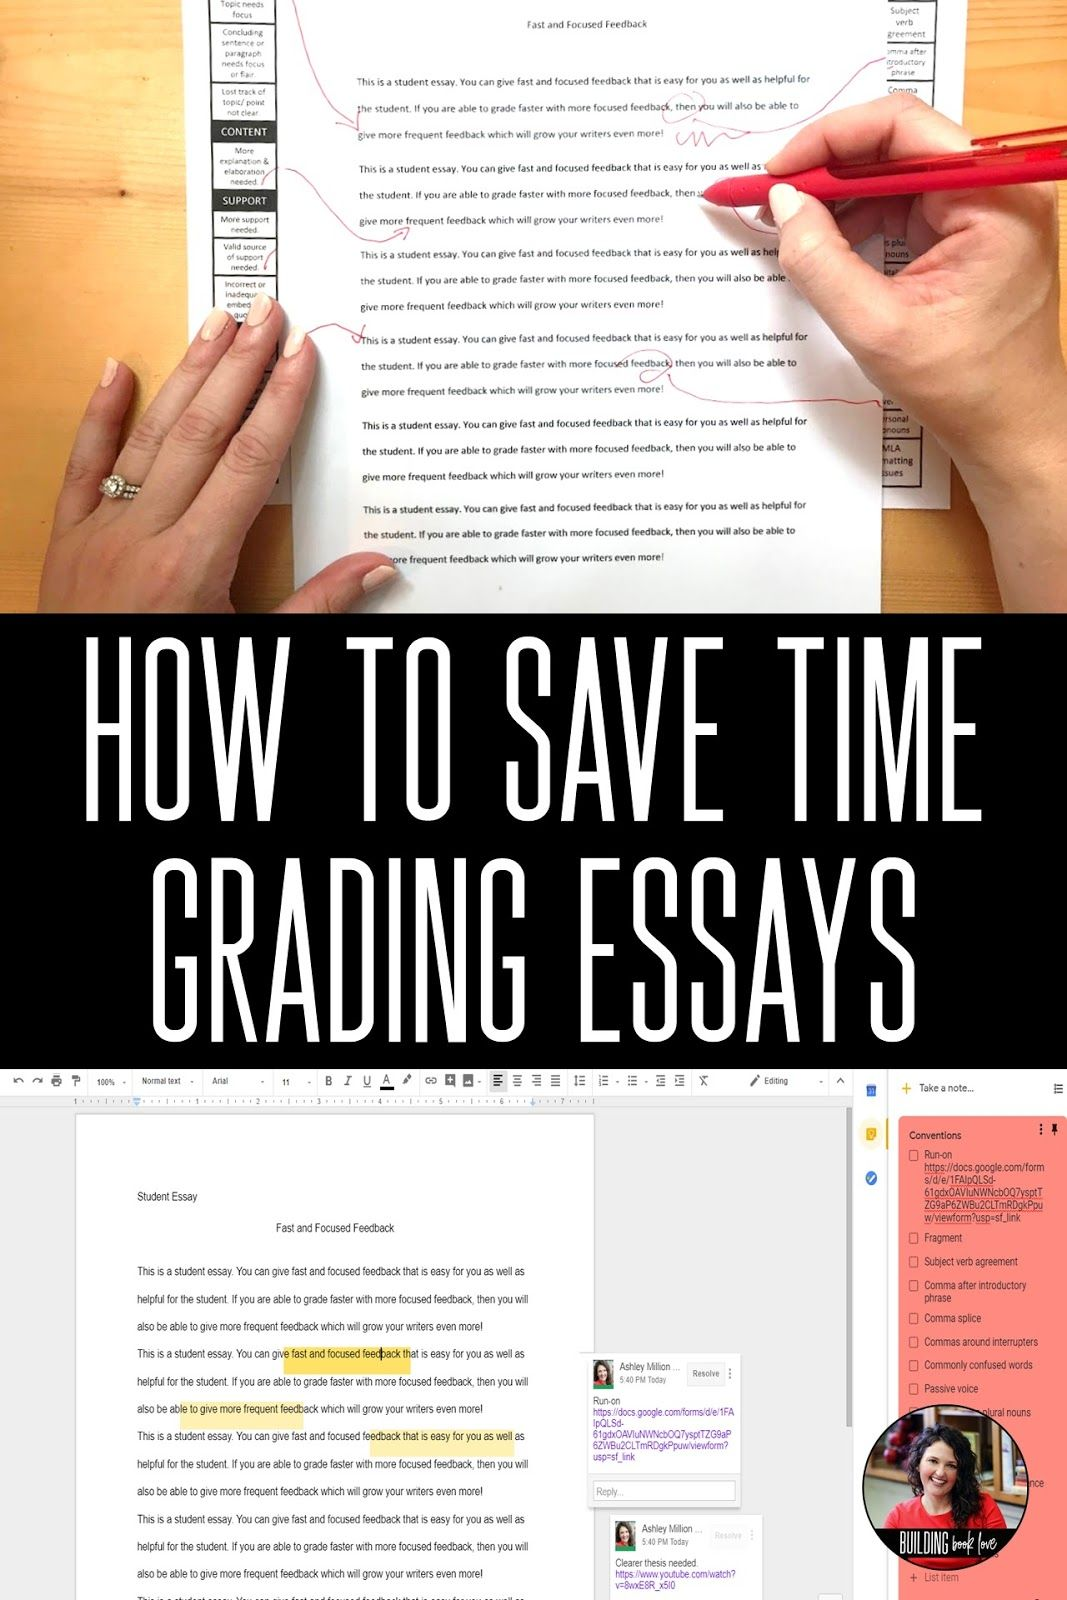 Essay Grading Tips For Grading Essays Faster And More Efficiently  How To Save Time Grading Essays Advanced English Ap English Teaching  Time Teaching